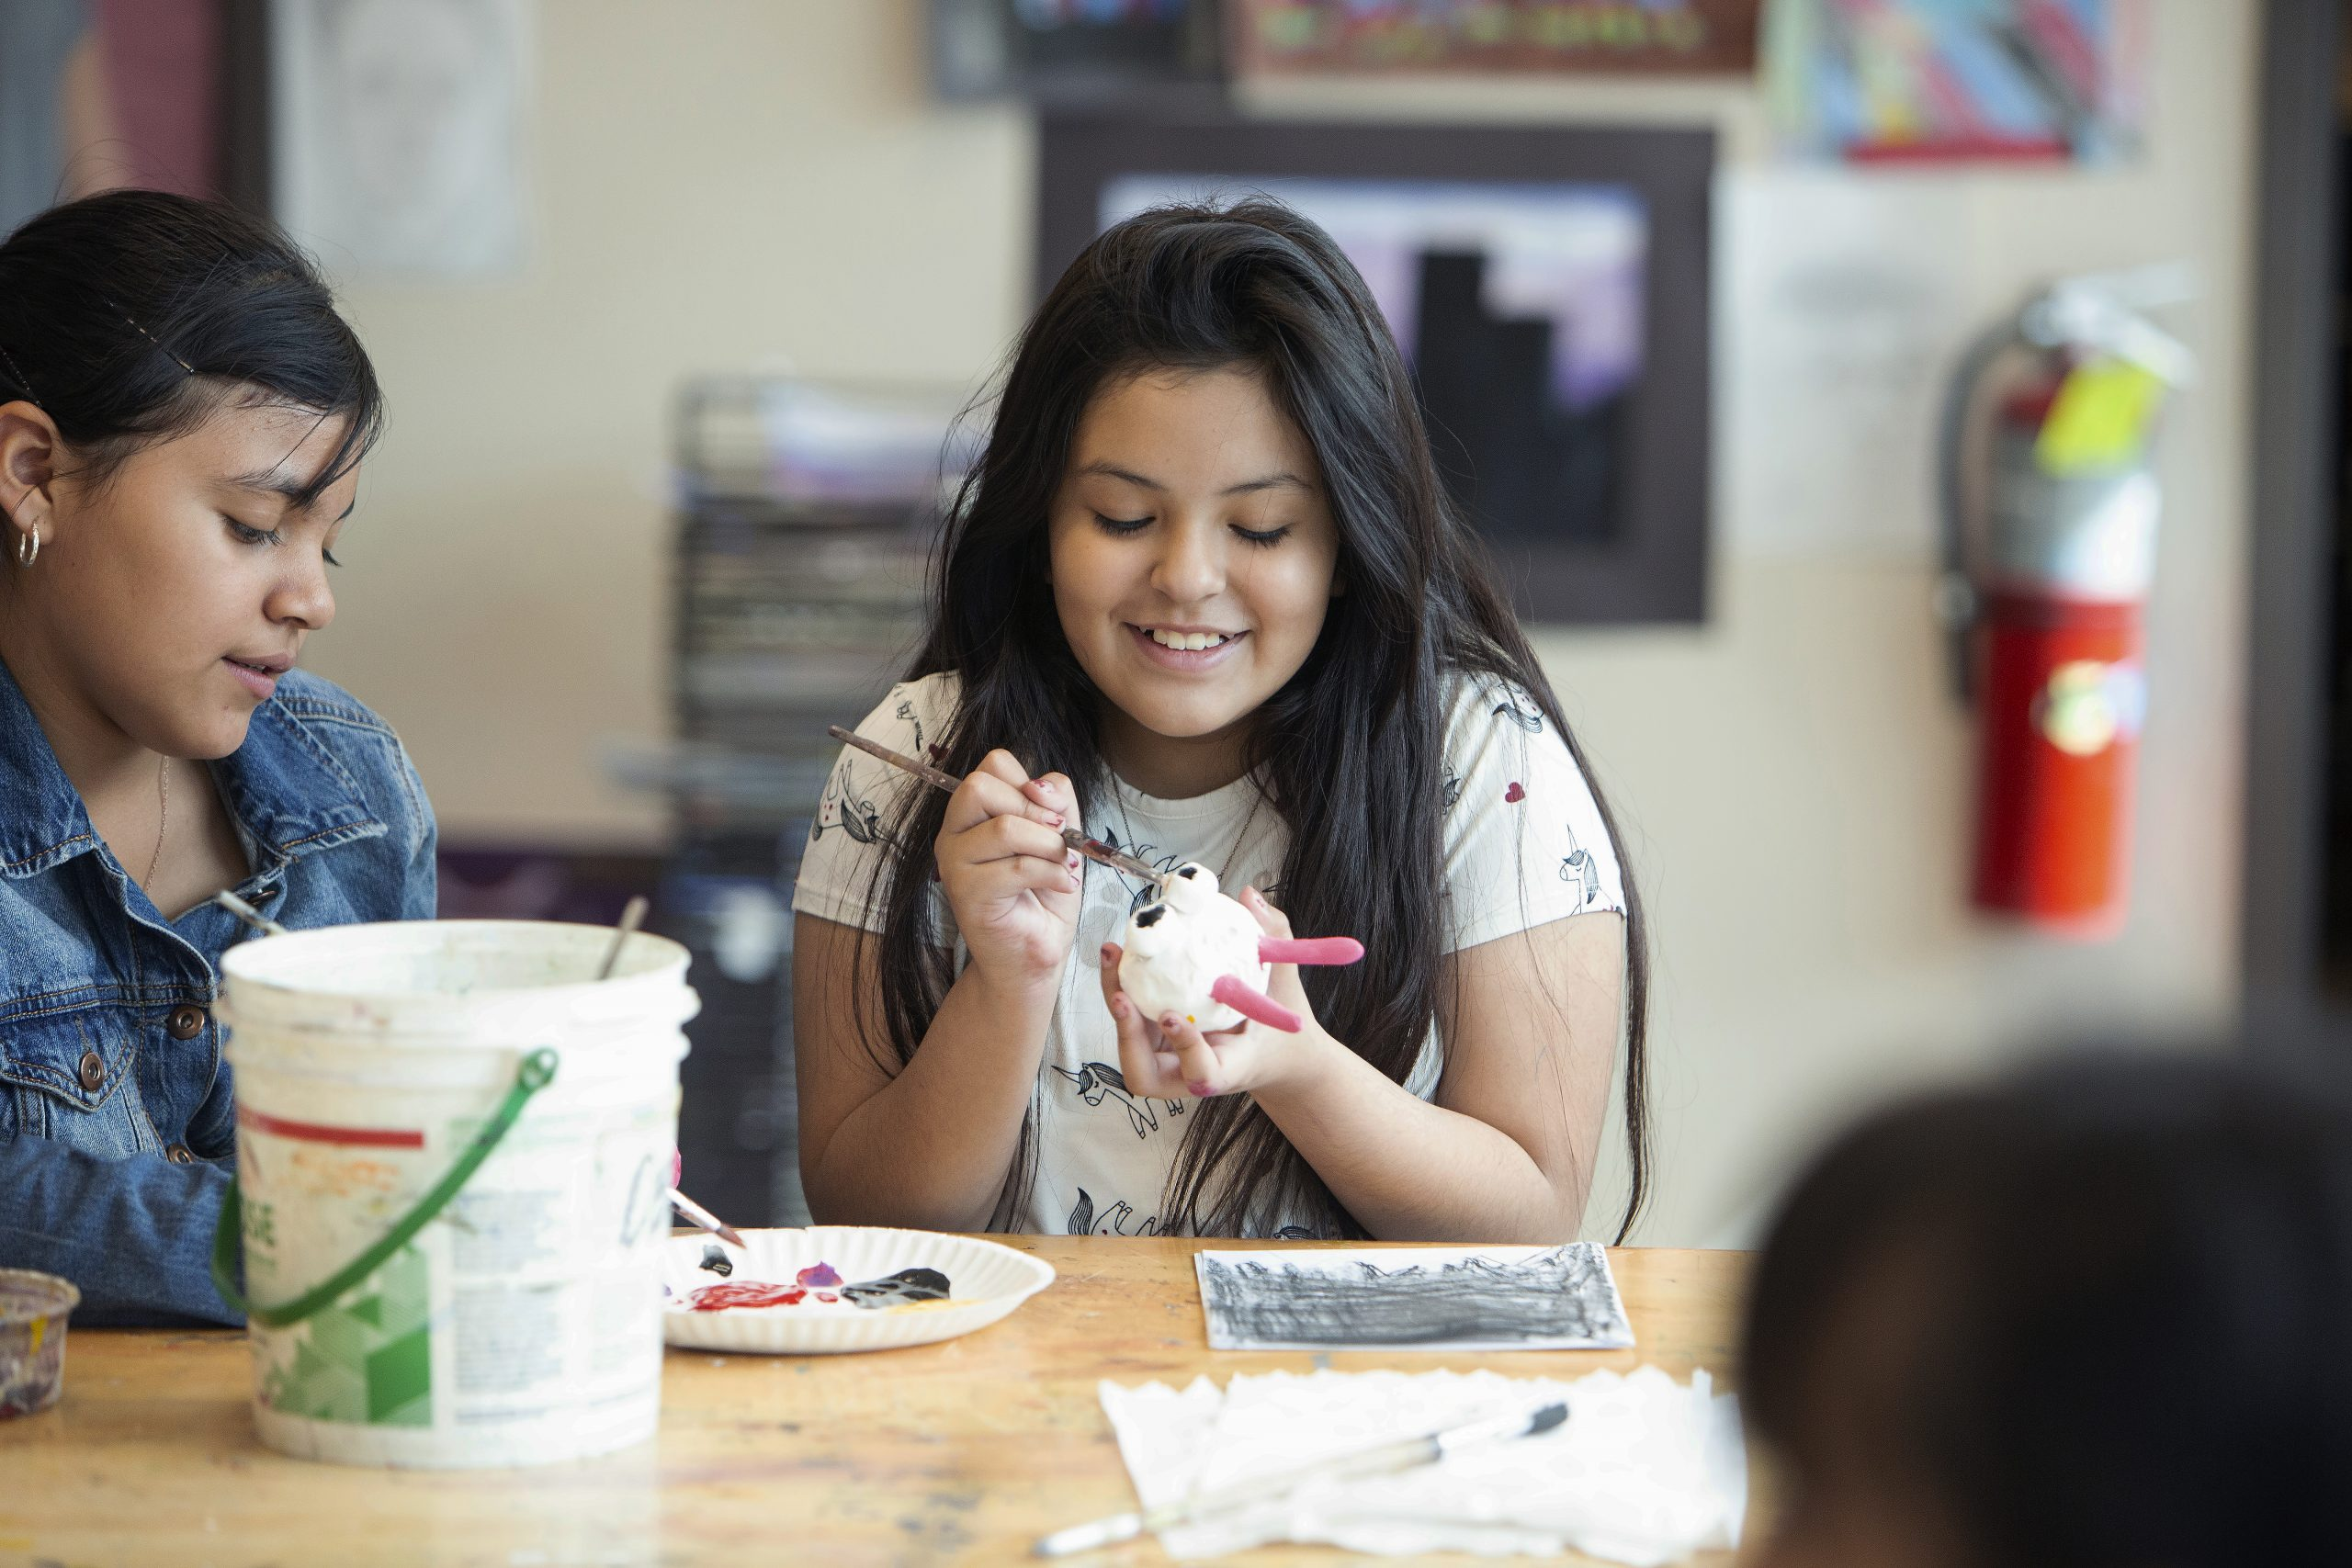 Two female students painting and smiling